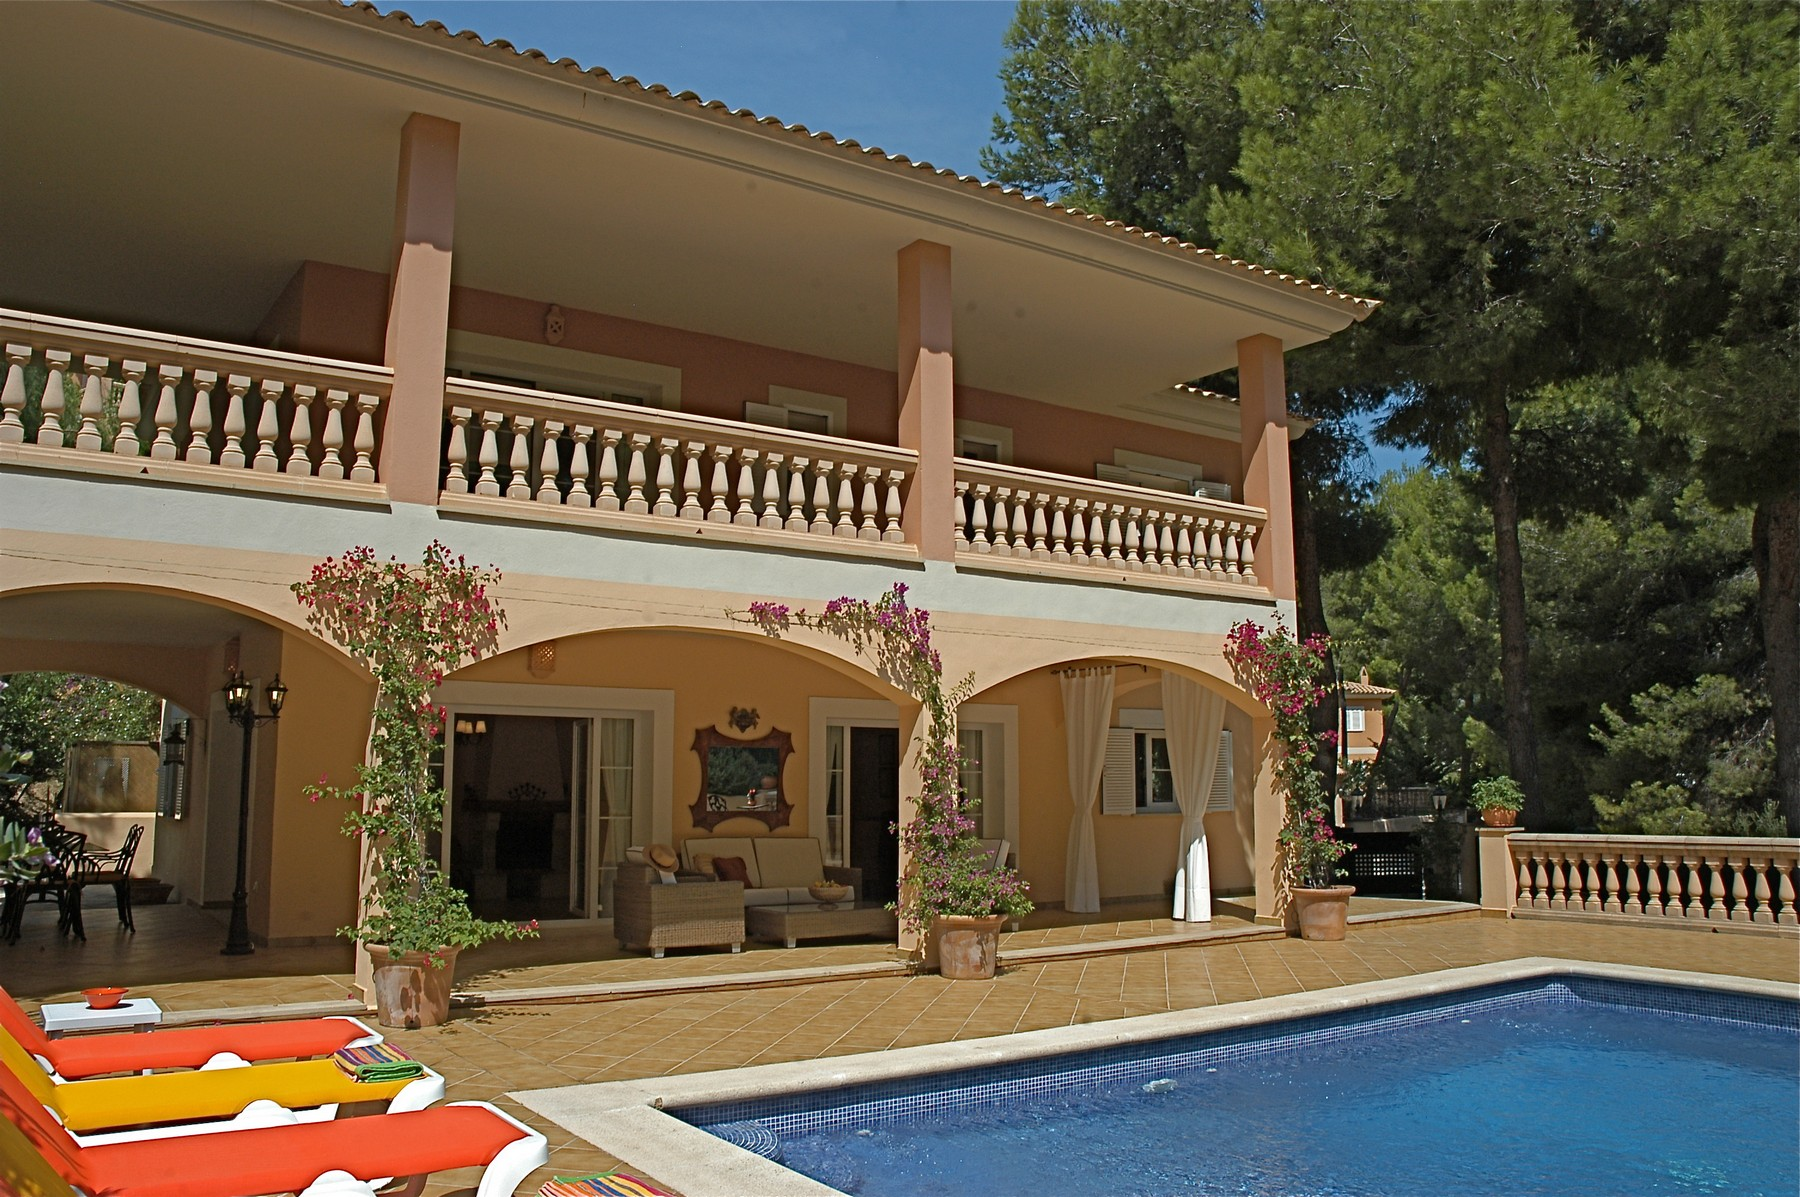 Single Family Home for Sale at Peaceful villa with privacy in Camp de Mar Camp De Mar, Mallorca, 07160 Spain